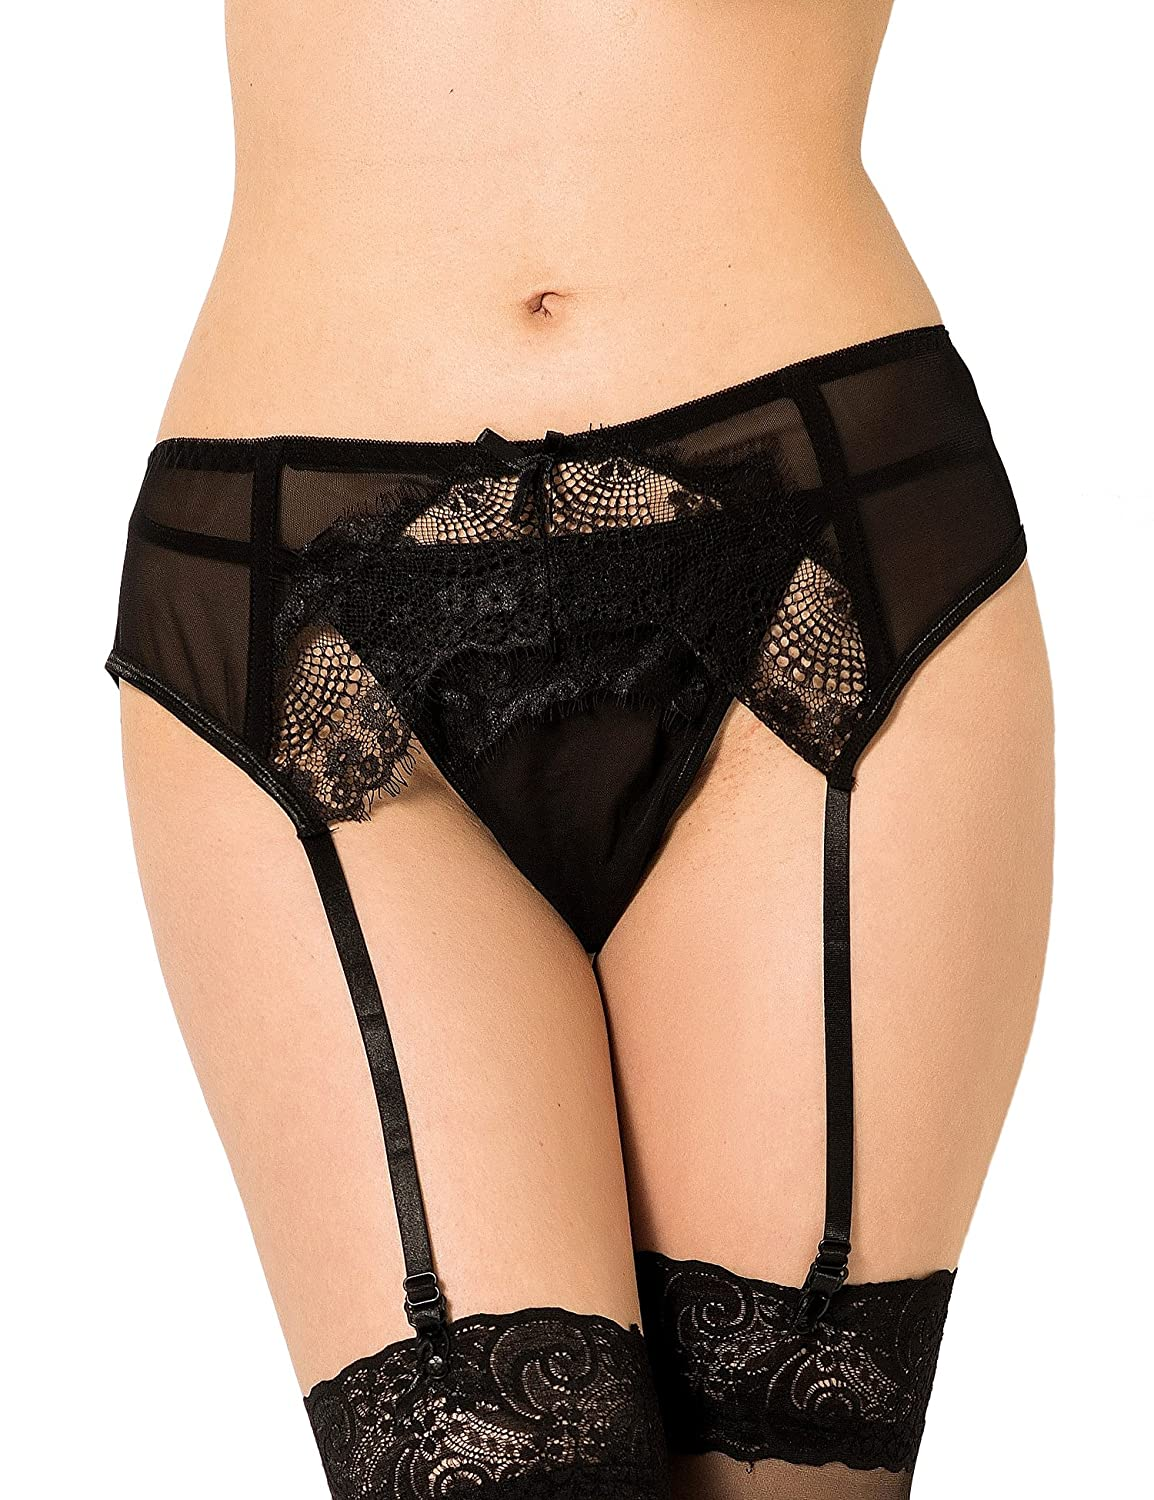 1832259f21f Top 10 wholesale Black Satin Garter Belt - Chinabrands.com